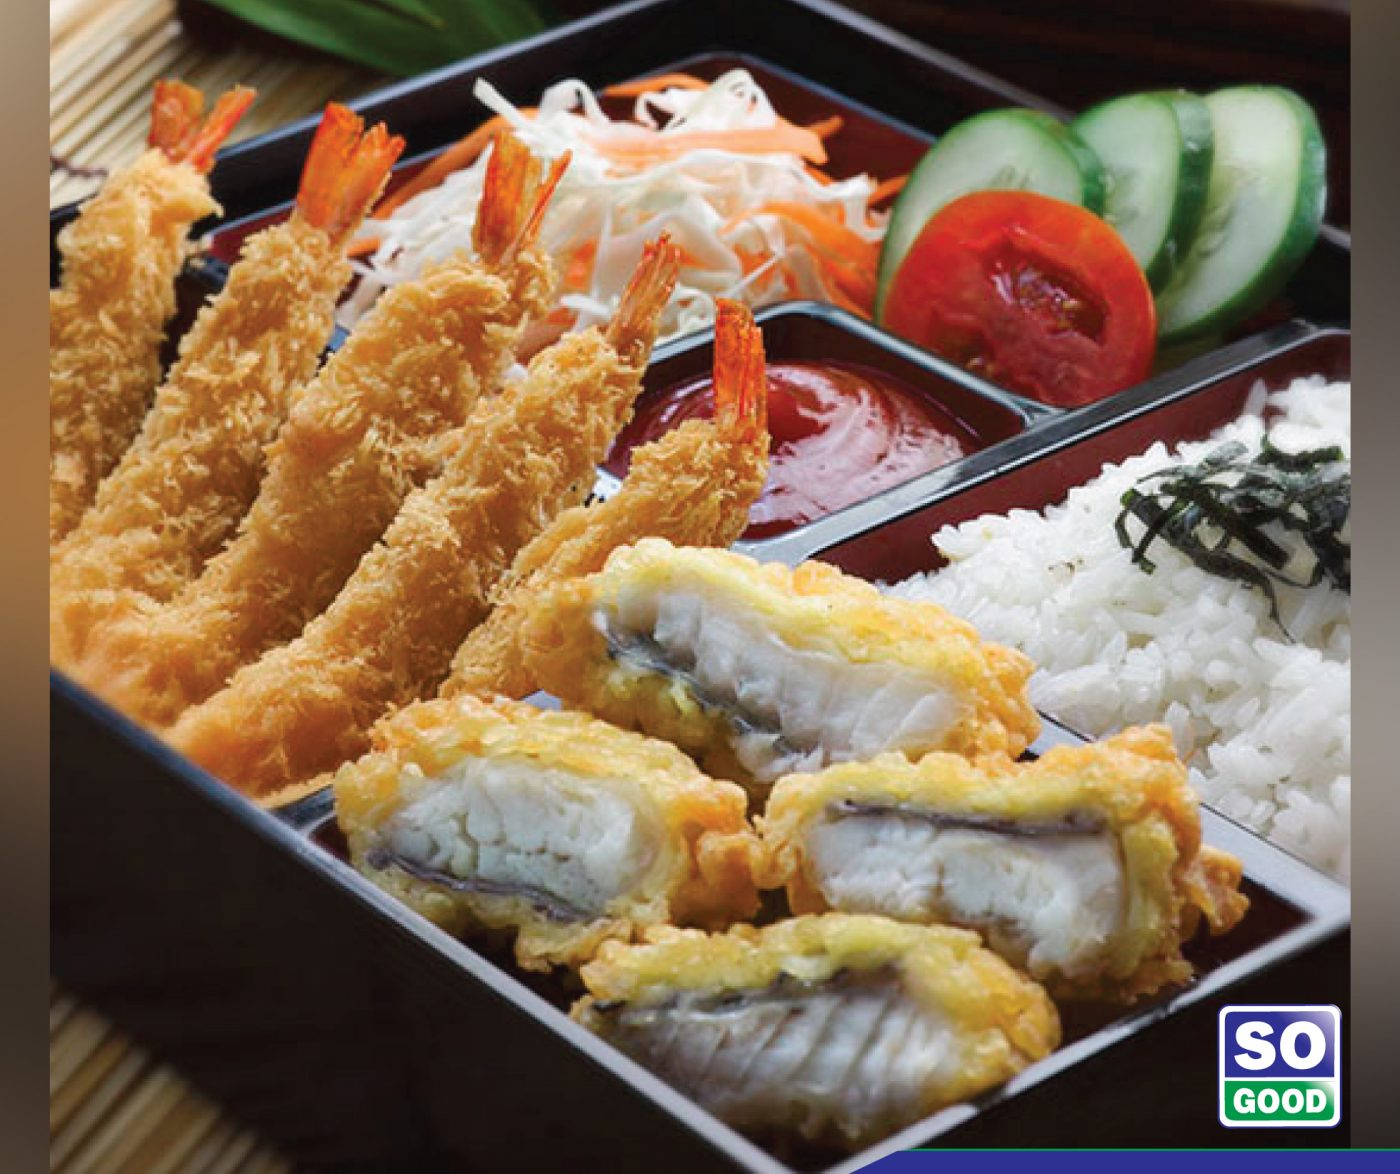 Image Tilapia Ala Bento With So Good Ebi Panko